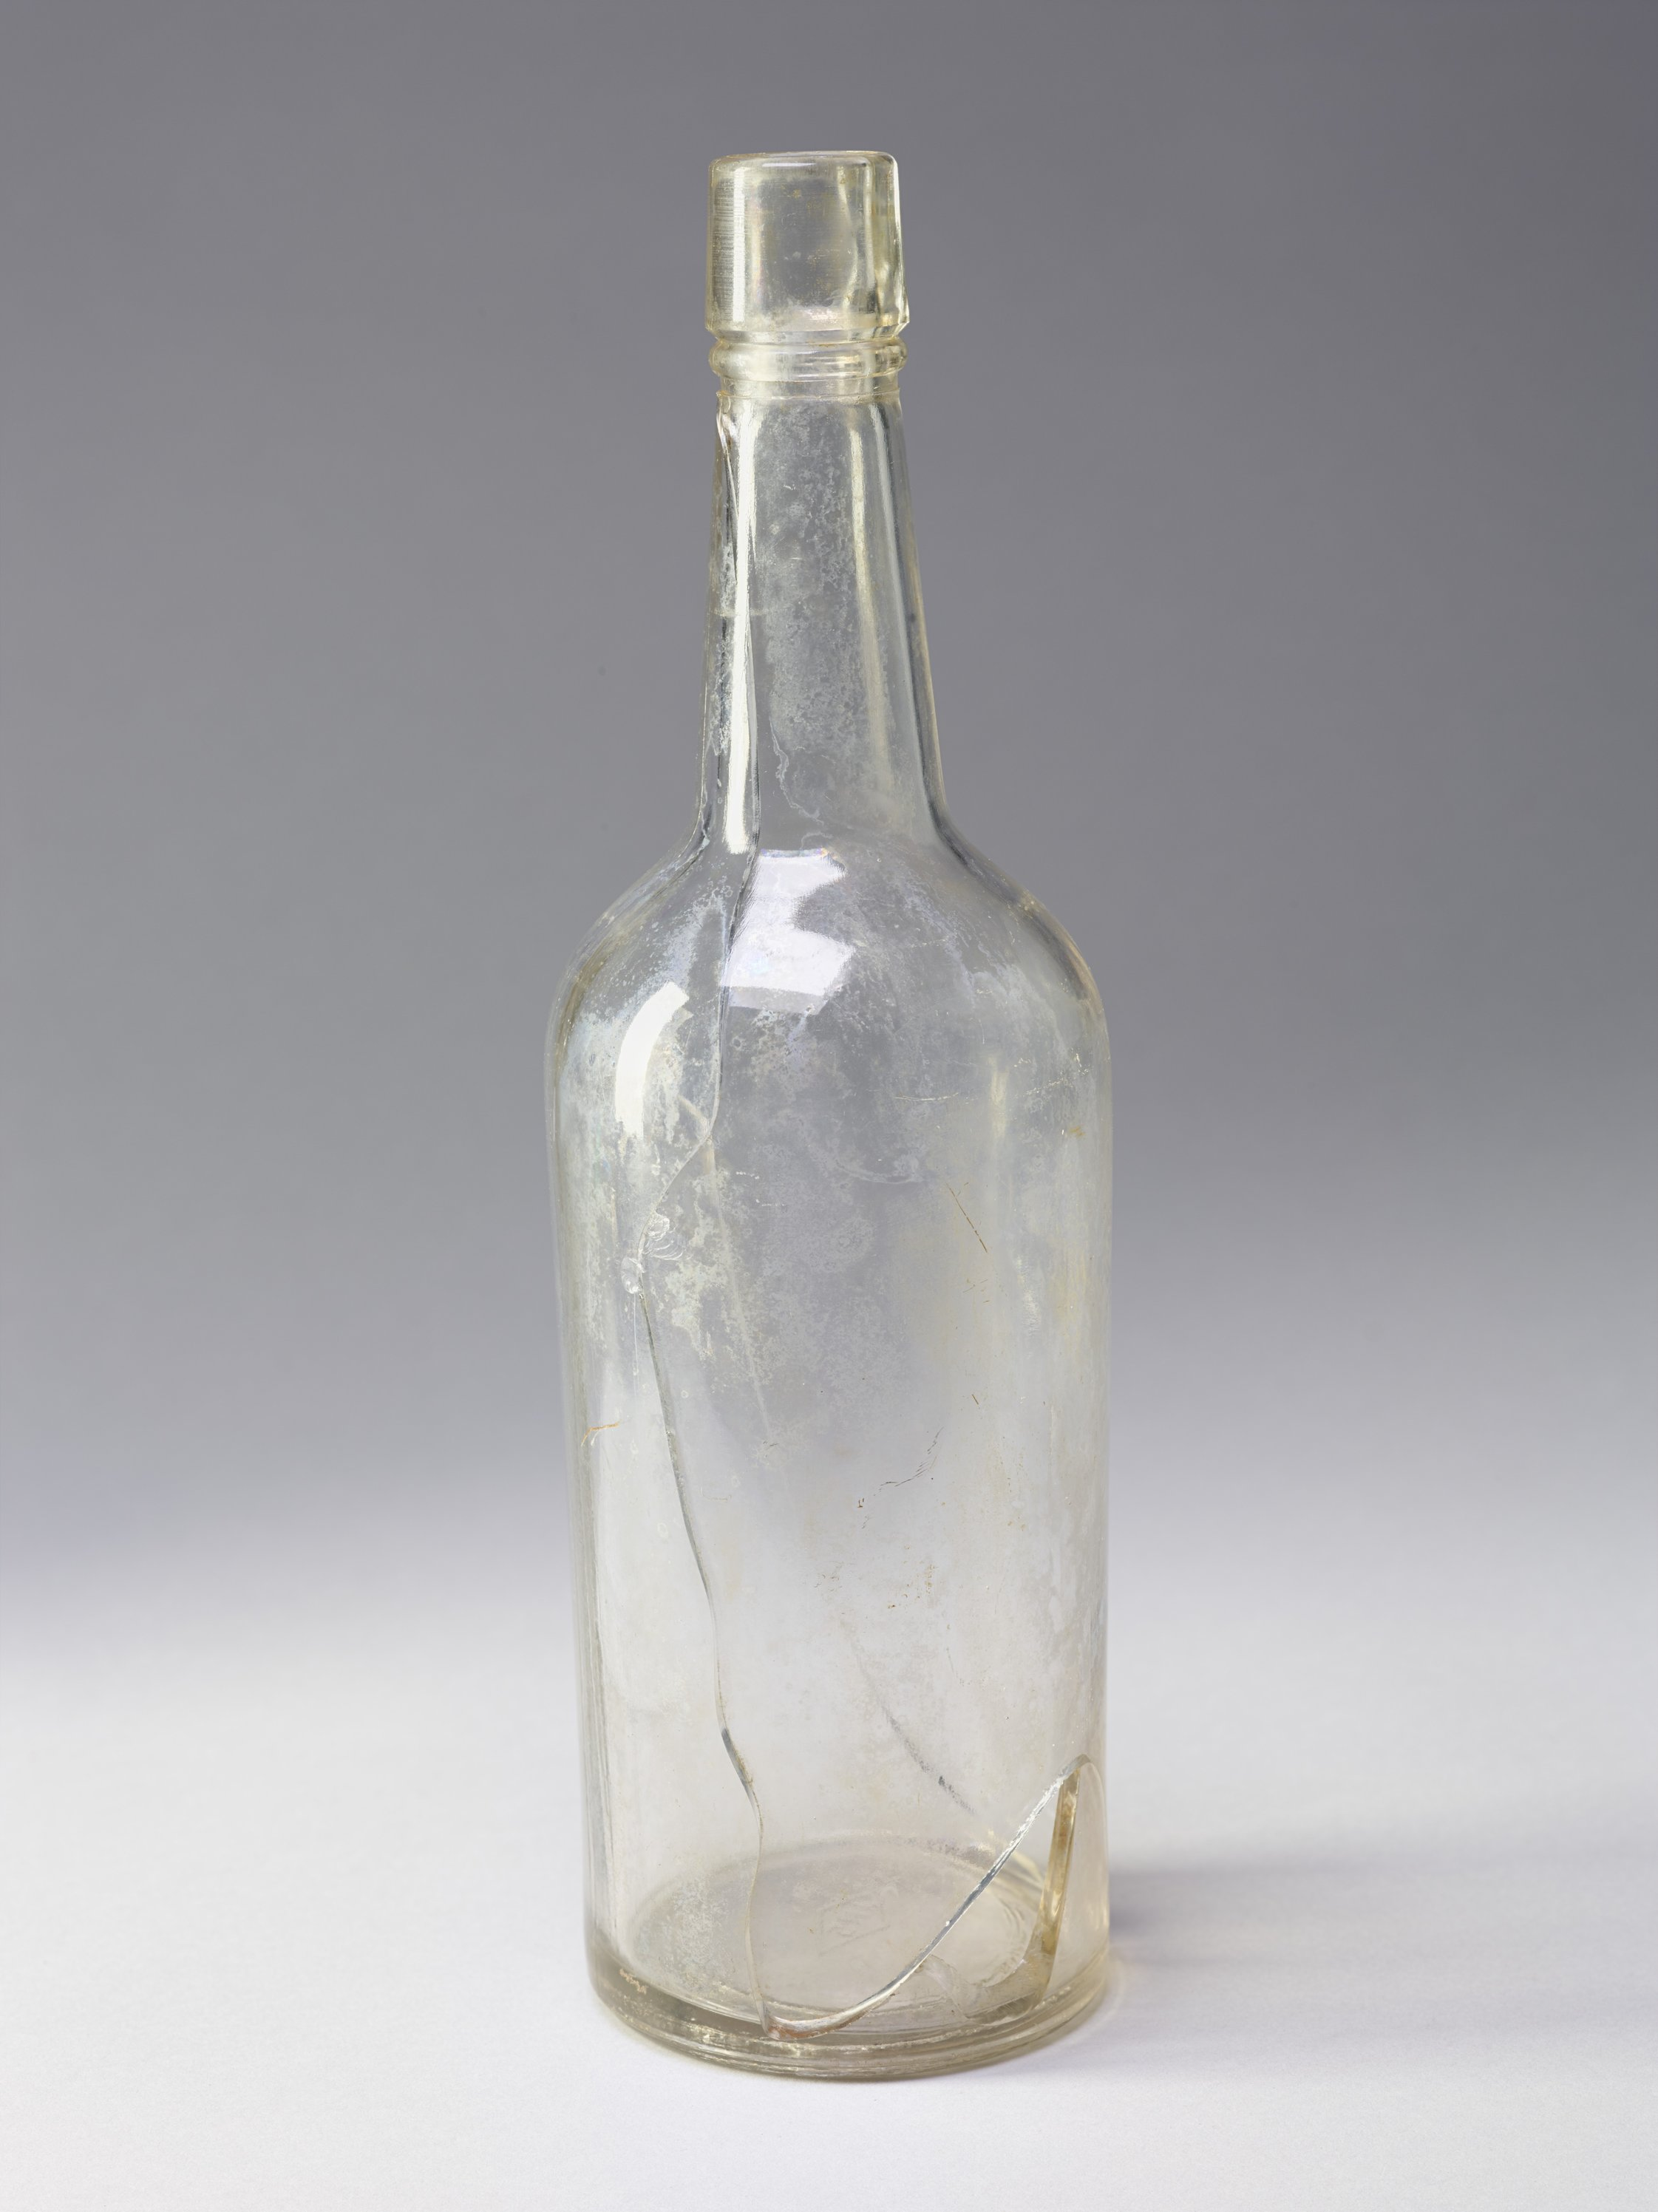 Liquor Bottle from the Adair Cabin Site, 14MM327 - 1